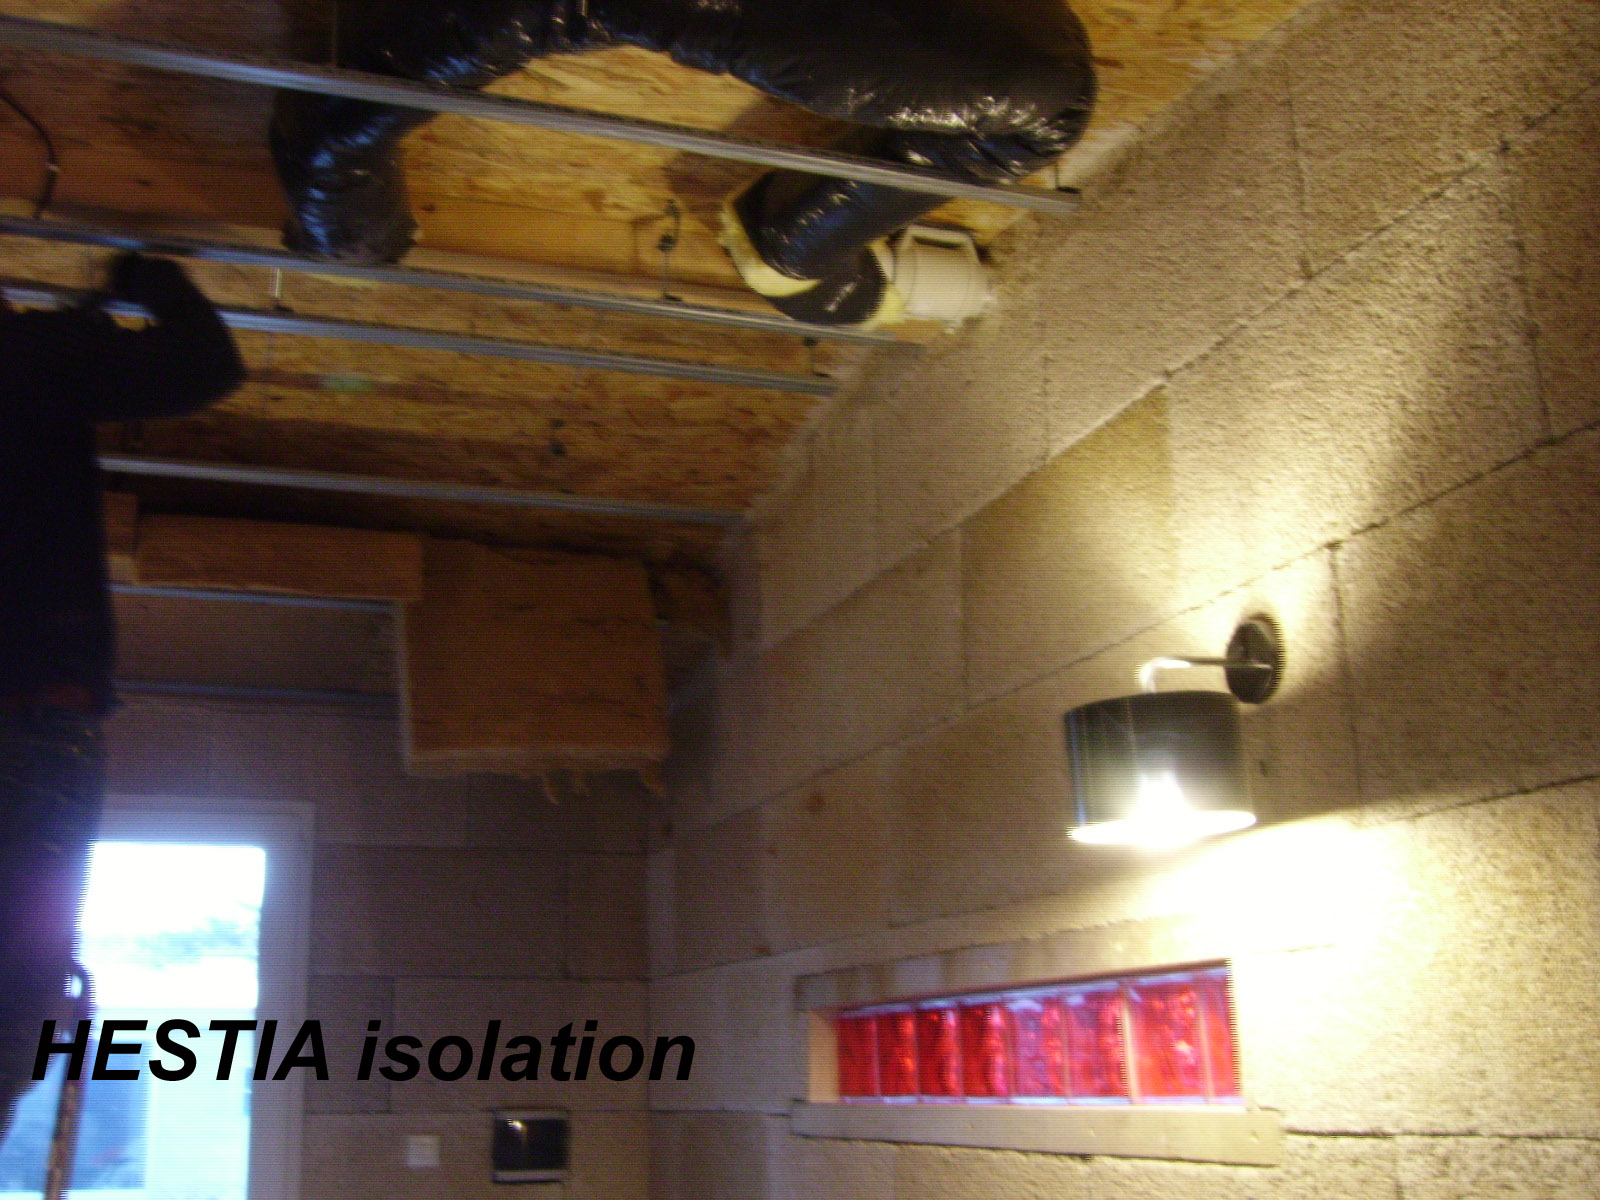 ventilation sourde avec absorbeur de vibration mur blocs en chanvre hestia